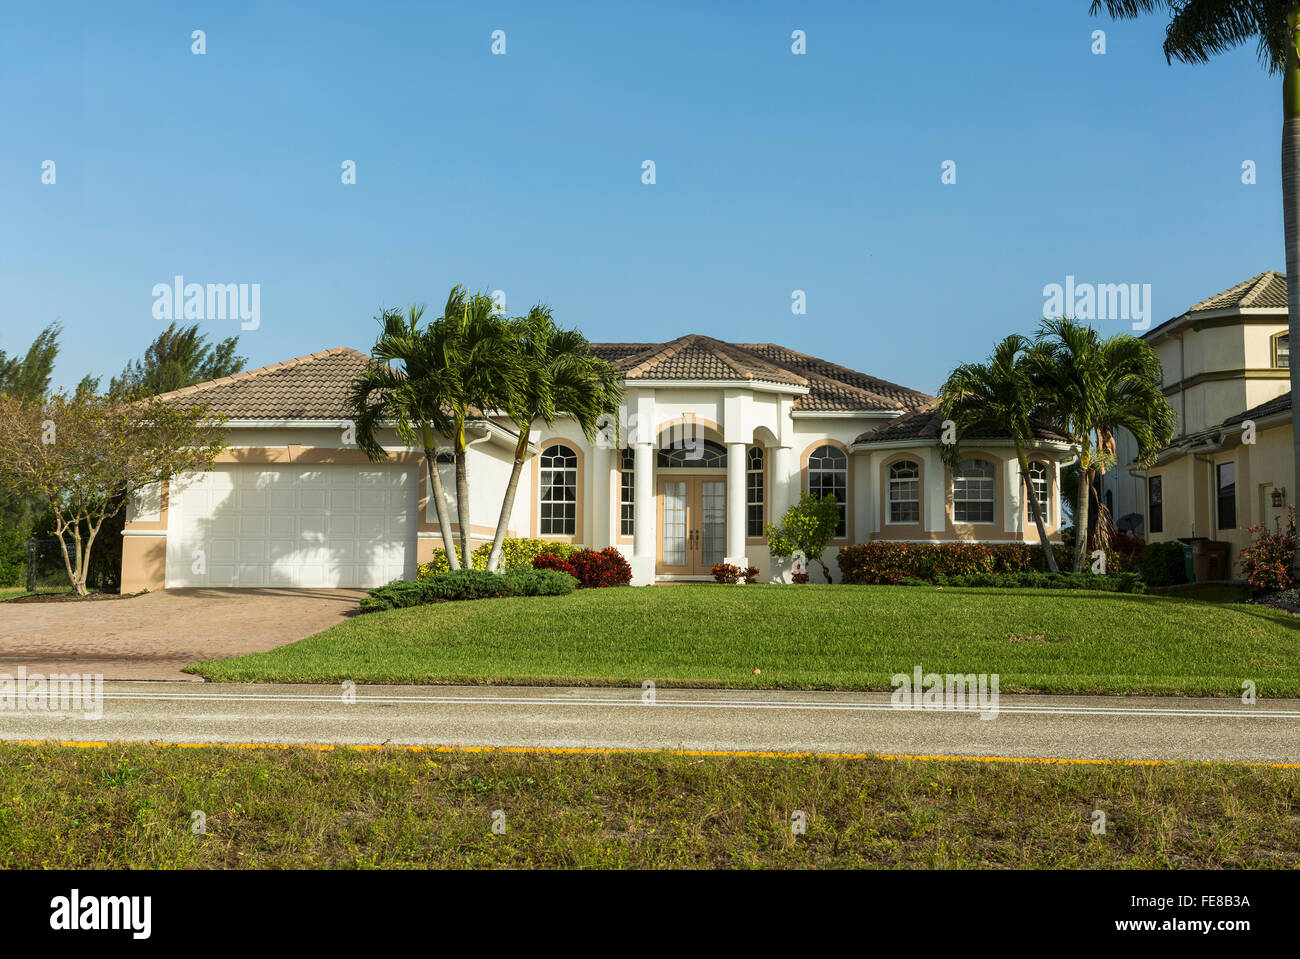 Stucco home images stunning front exterior with stucco for Block home builders in florida